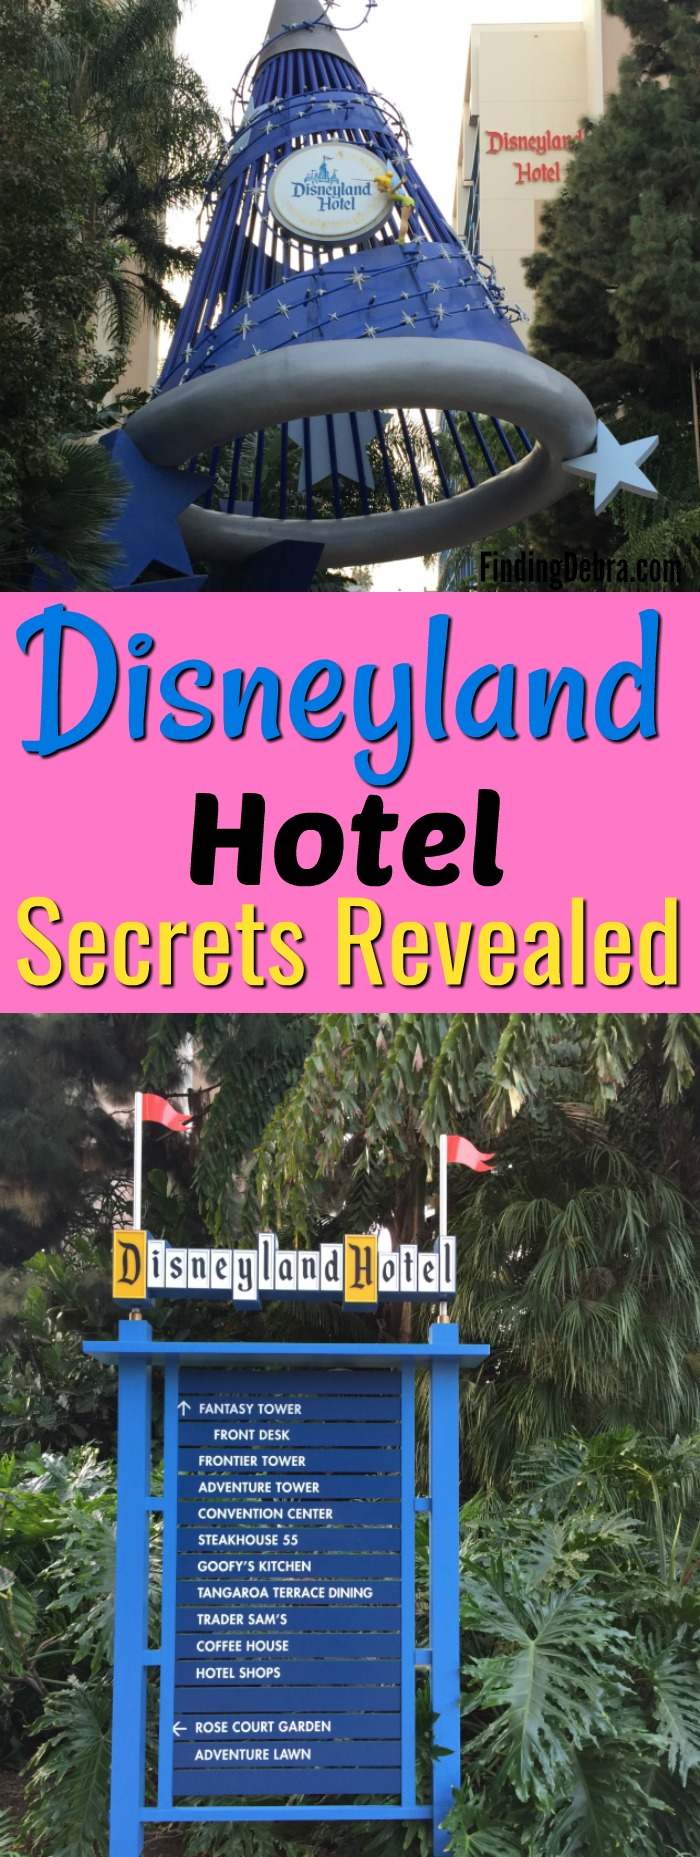 Disneyland Hotel Secrets Revealed